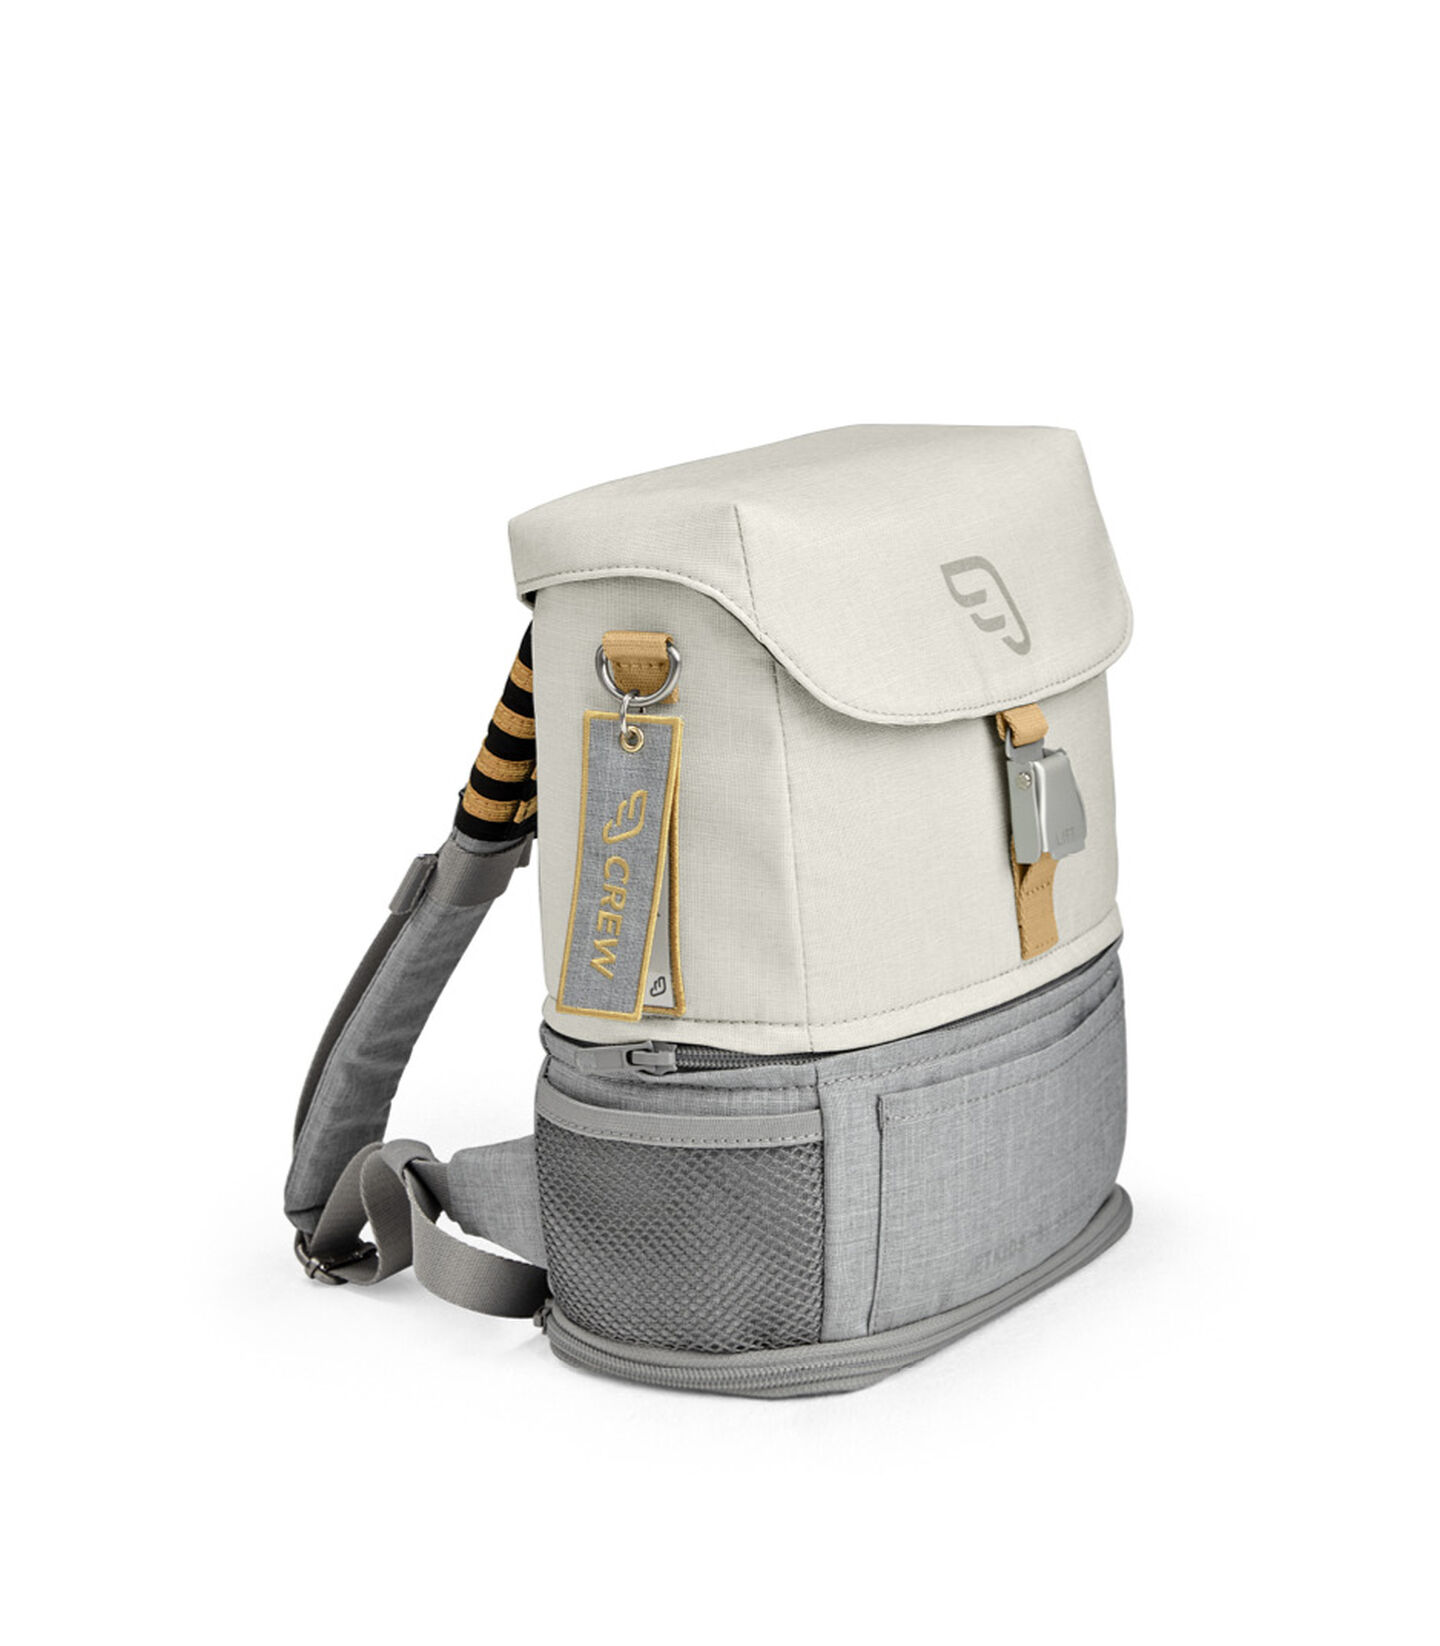 JetKids by Stokke® Crew Backpack White, White, mainview view 1